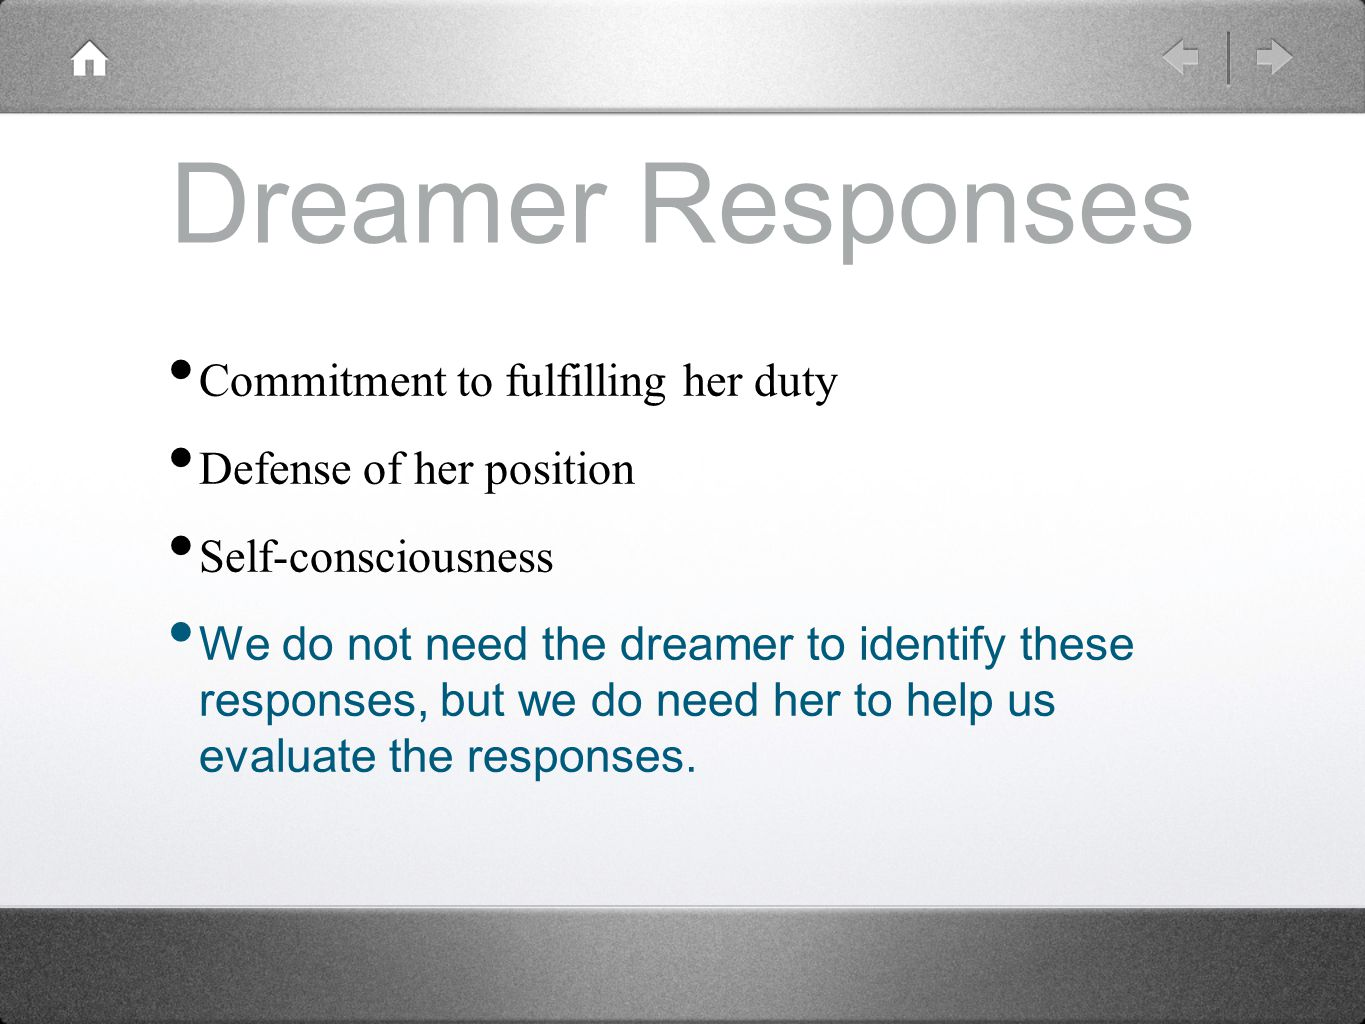 Dreamer Responses Commitment to fulfilling her duty Defense of her position Self-consciousness We do not need the dreamer to identify these responses, but we do need her to help us evaluate the responses.